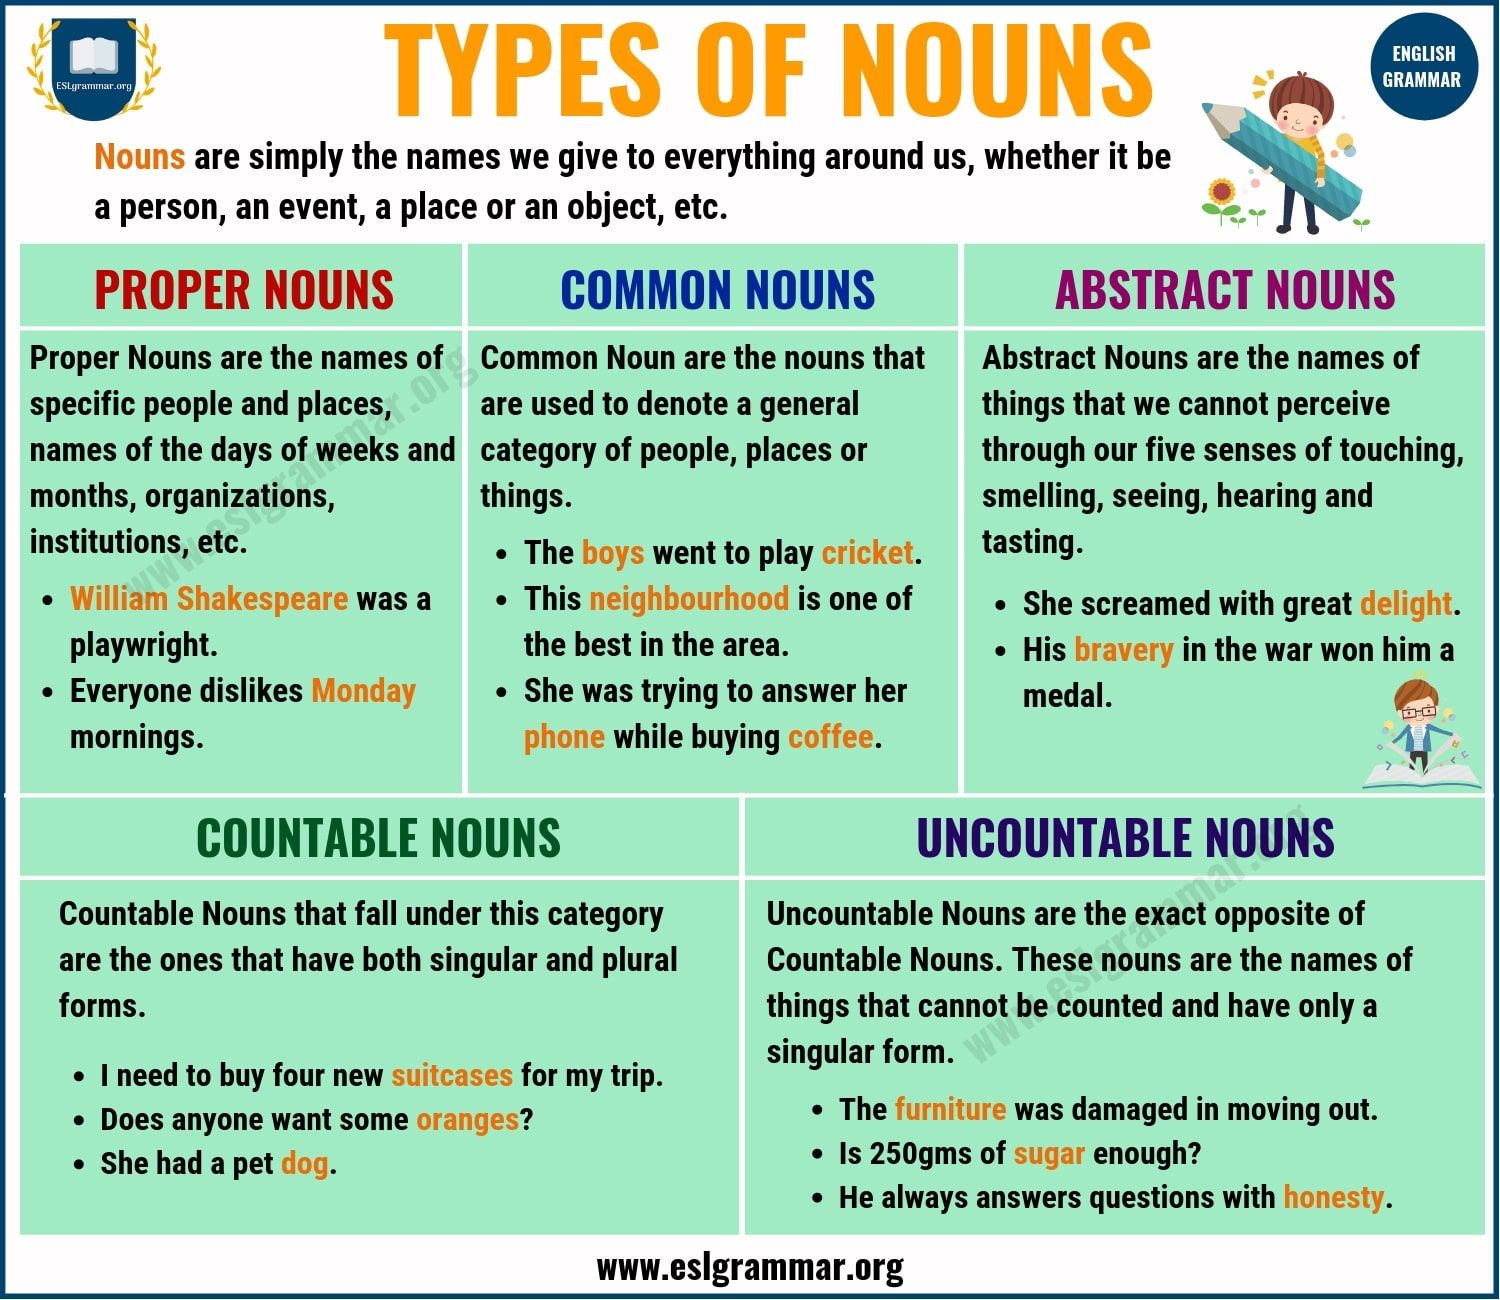 8 types of nouns in english with useful examples | types of nouns.